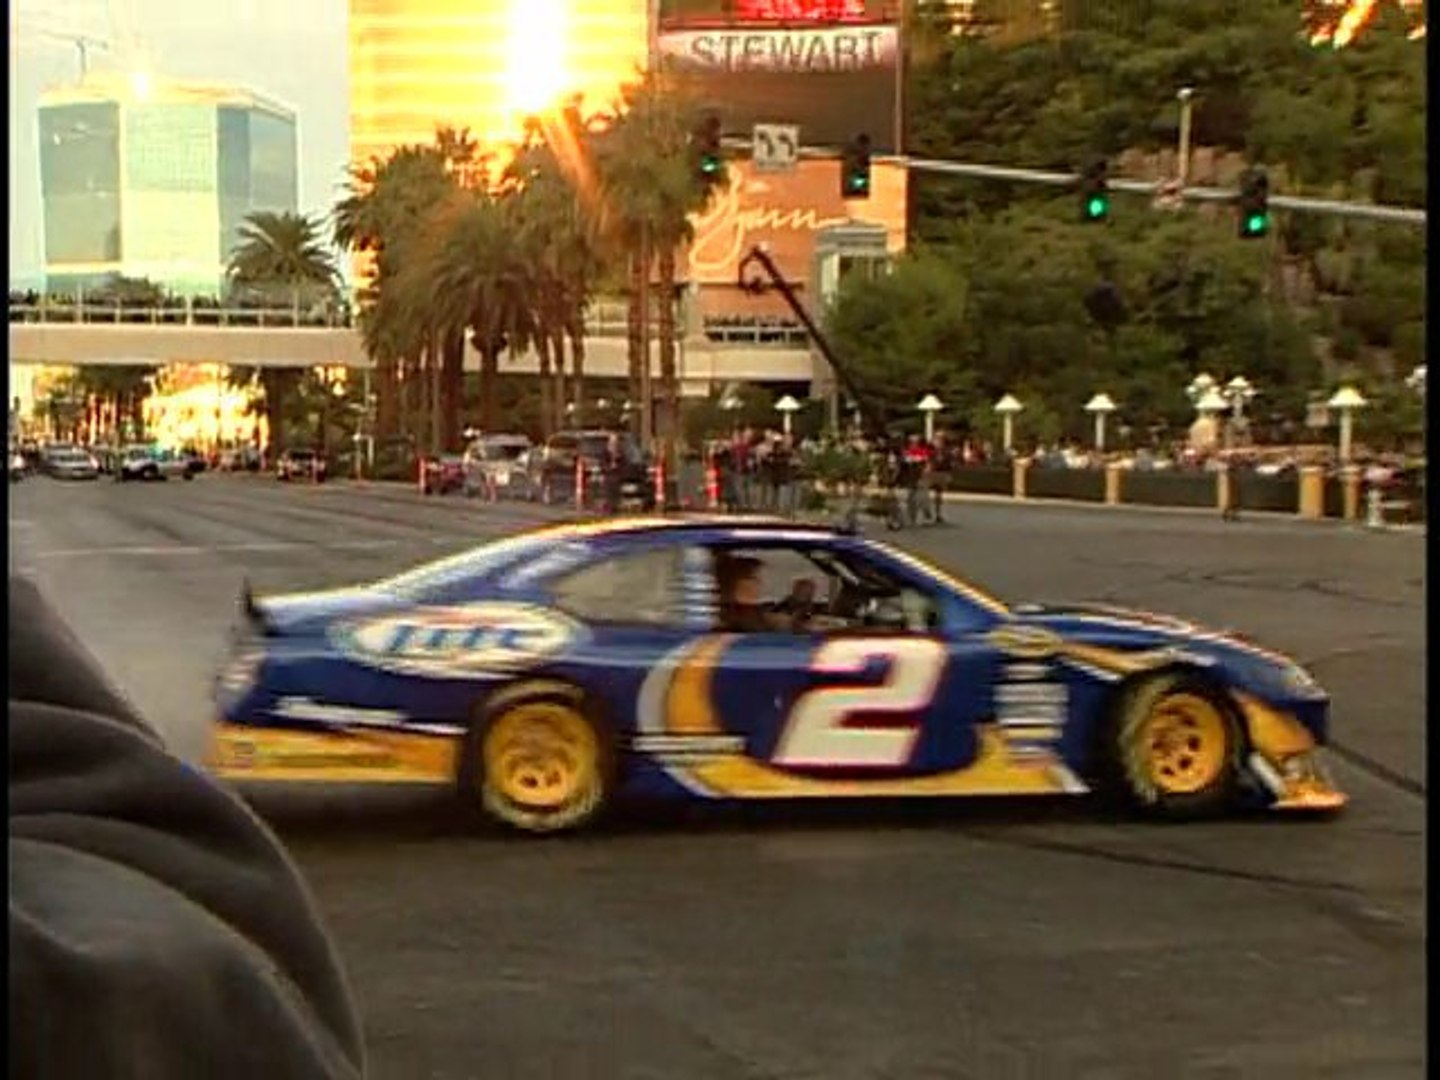 Jimmie Johnson burns rubber on the Las Vegas Strip